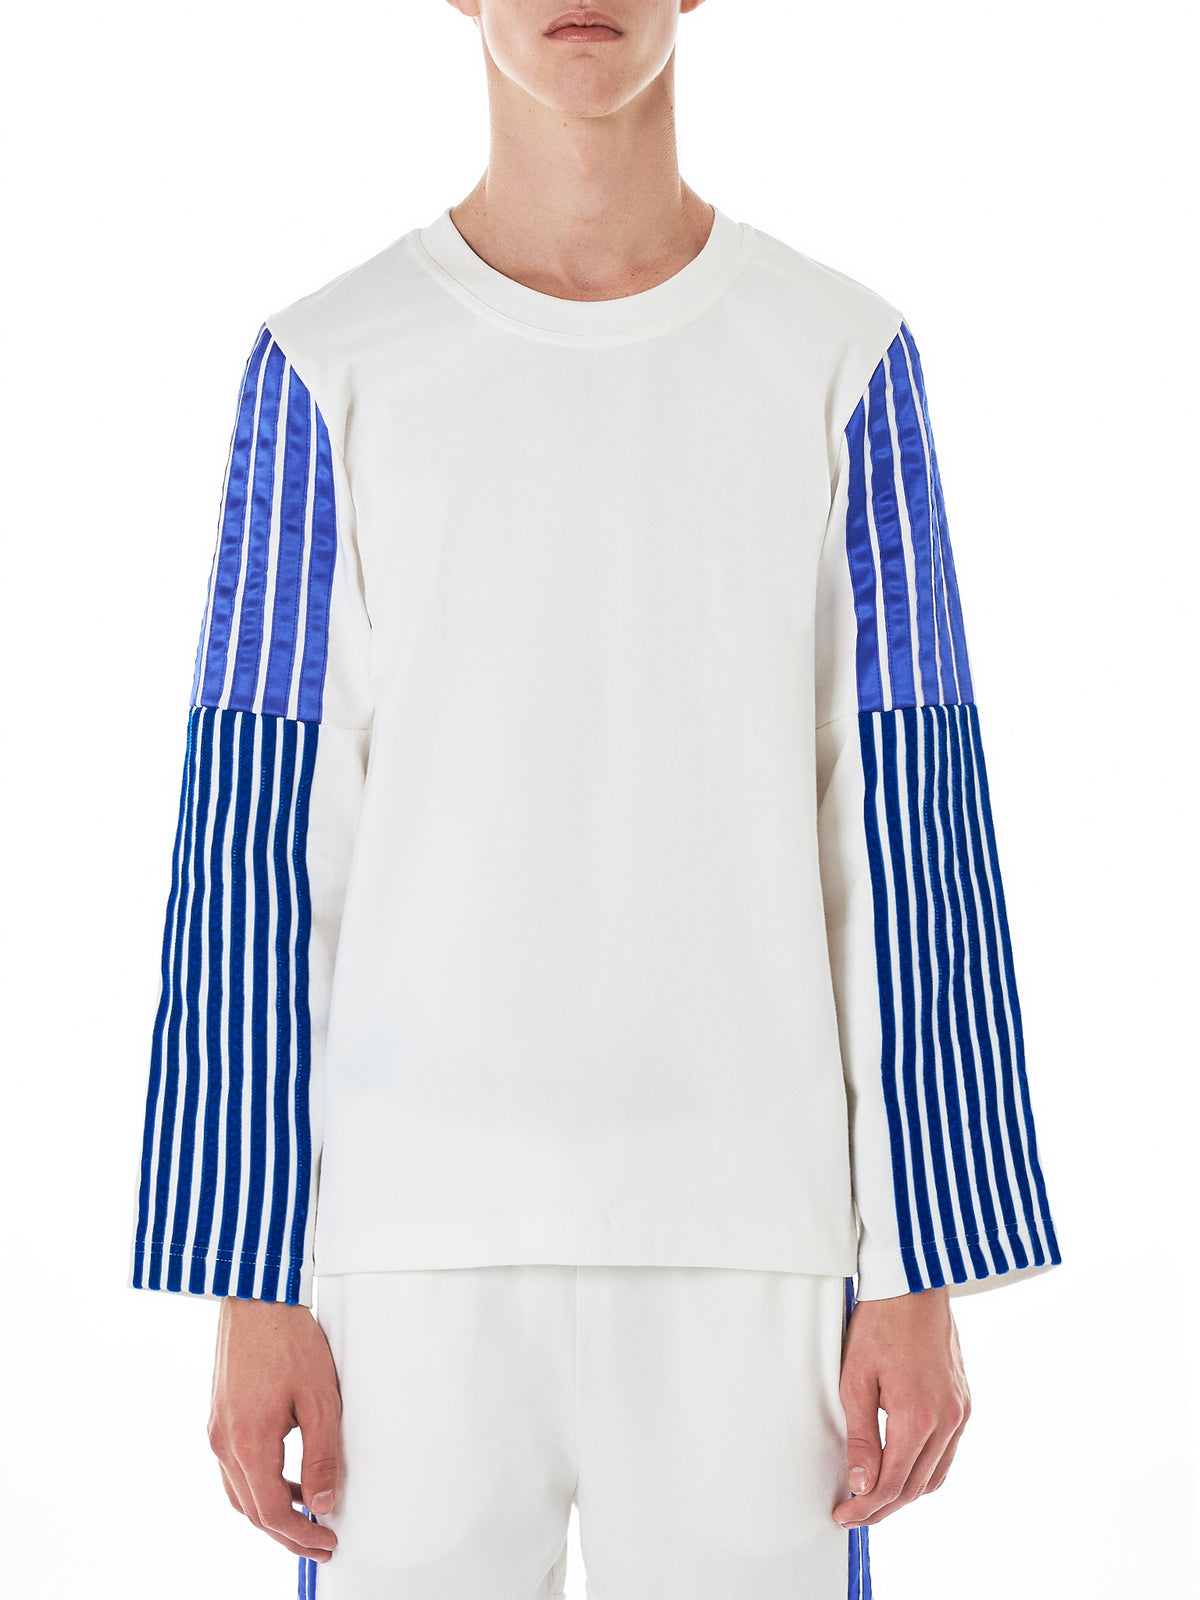 Striped Long-Sleeve Tee (TS136A-WHT-ROYBLU-PURP-STRIPES)